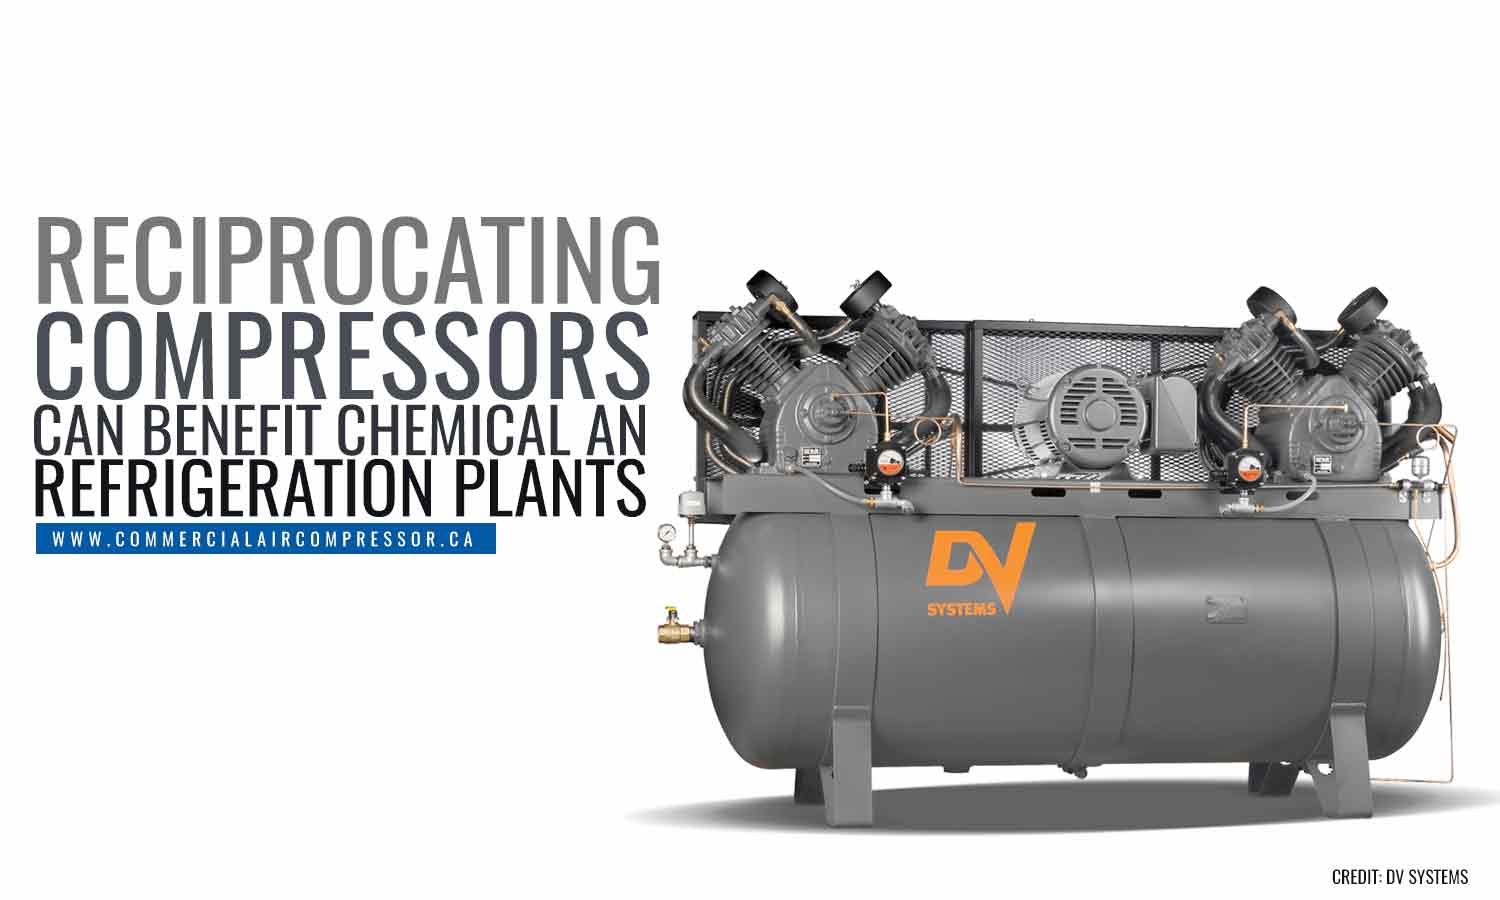 Reciprocating compressors can benefit chemical and refrigeration plants